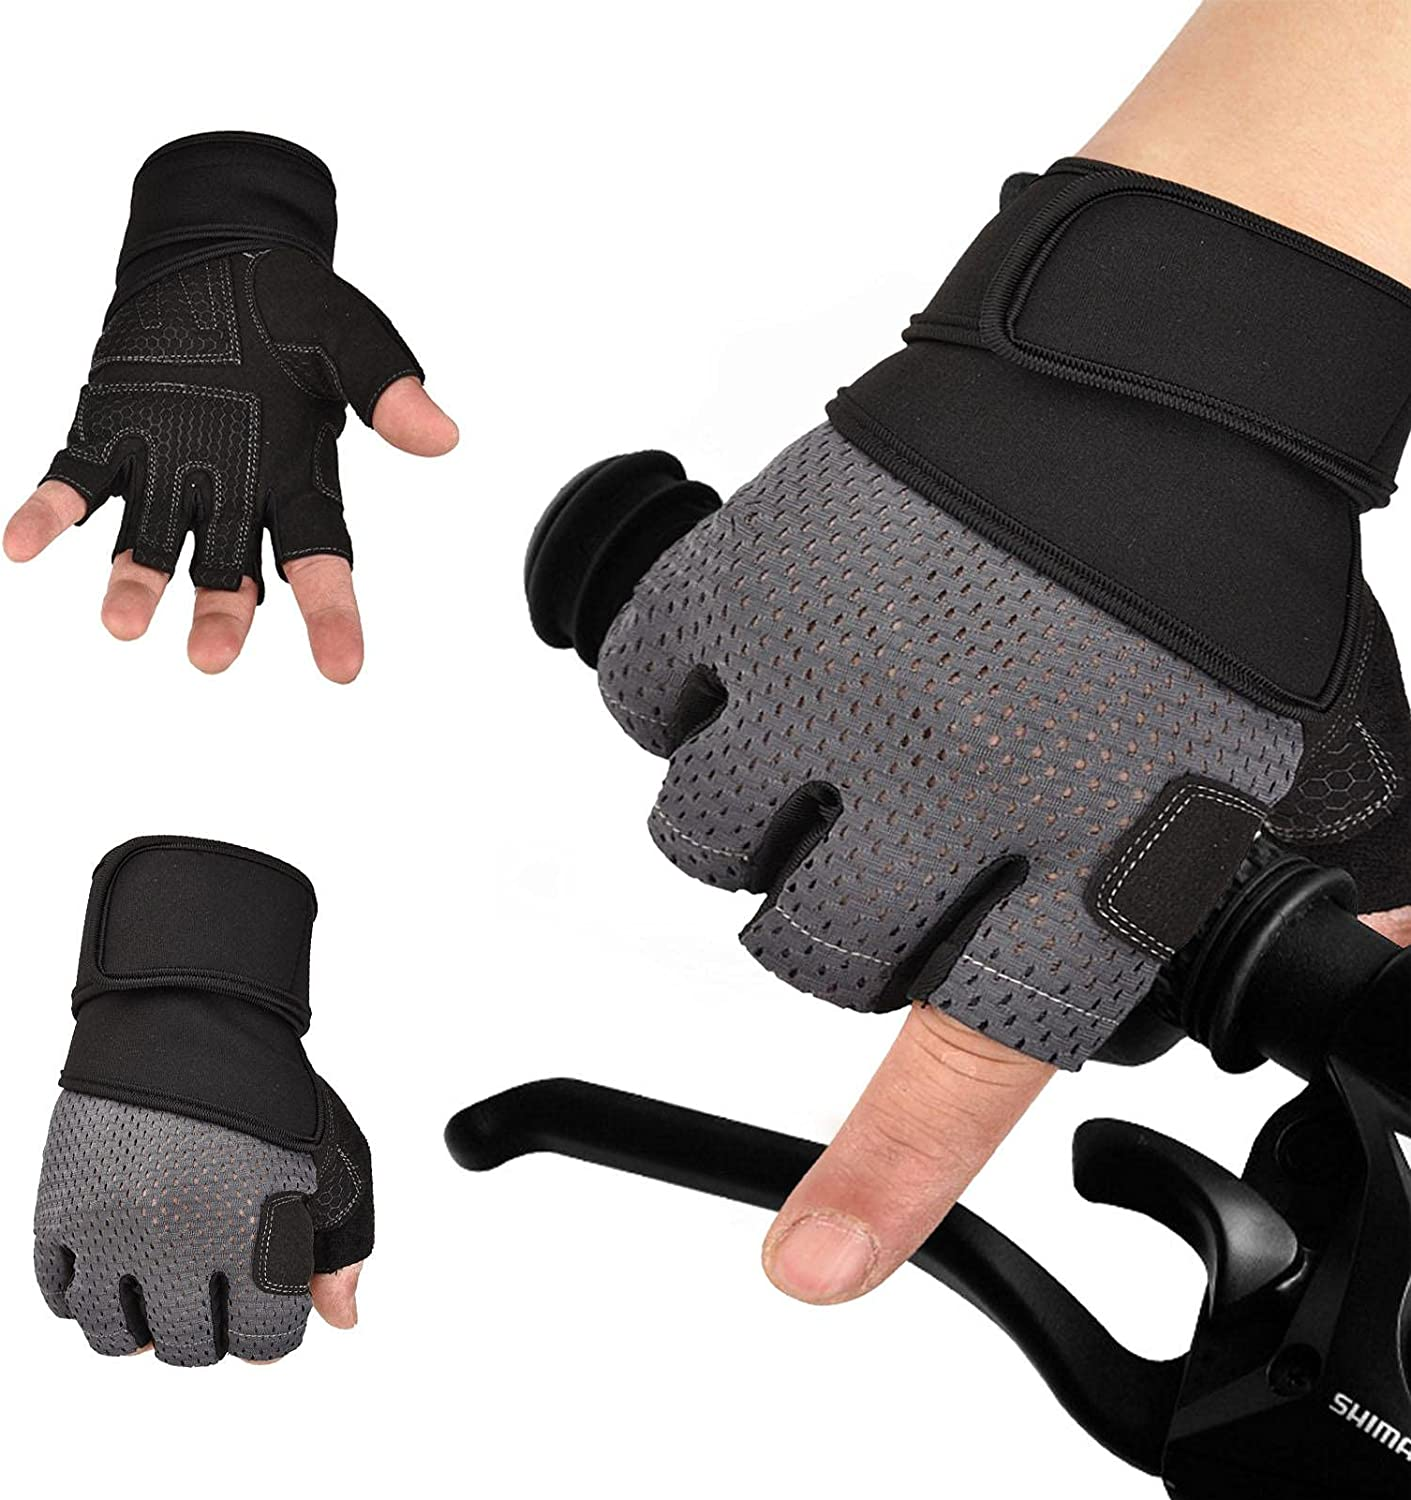 BAODAN Special price for a limited time Cycling Gloves Half-Finger Mountain Bike Fashion